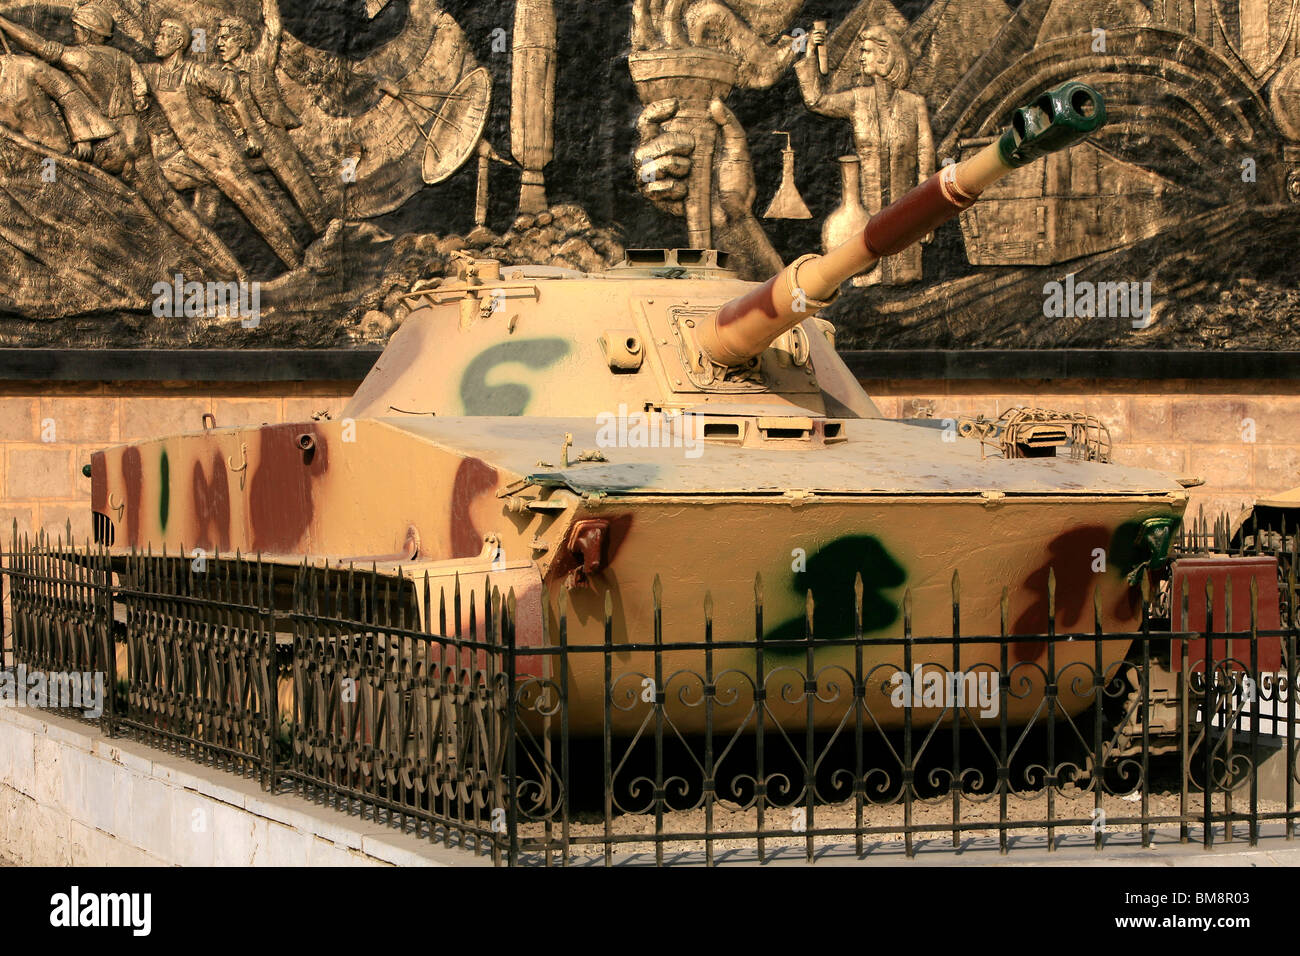 The Soviet PT-76 light amphibious tank of the Egyptian army at the Military Museum in Cairo, Egypt - Stock Image